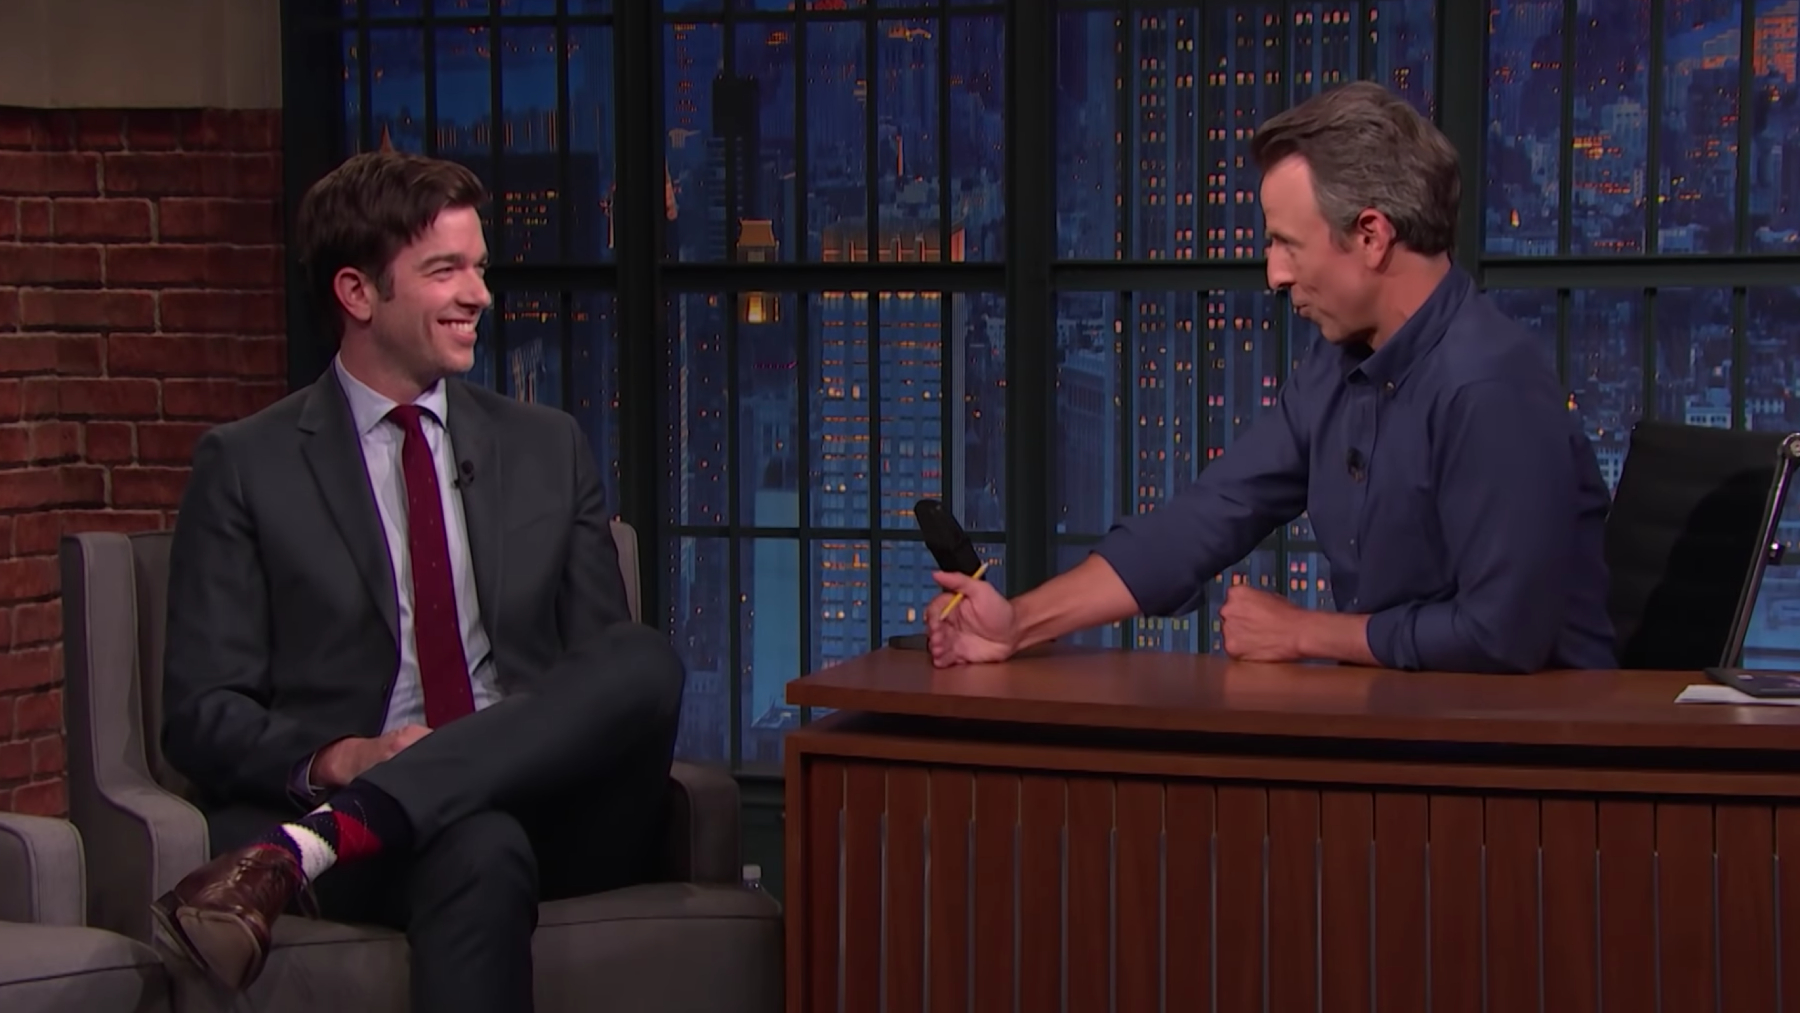 John Mulaney Talks Rehab, Pregnancy With Olivia Munn in First Interview Since Recovery - Rolling Stone